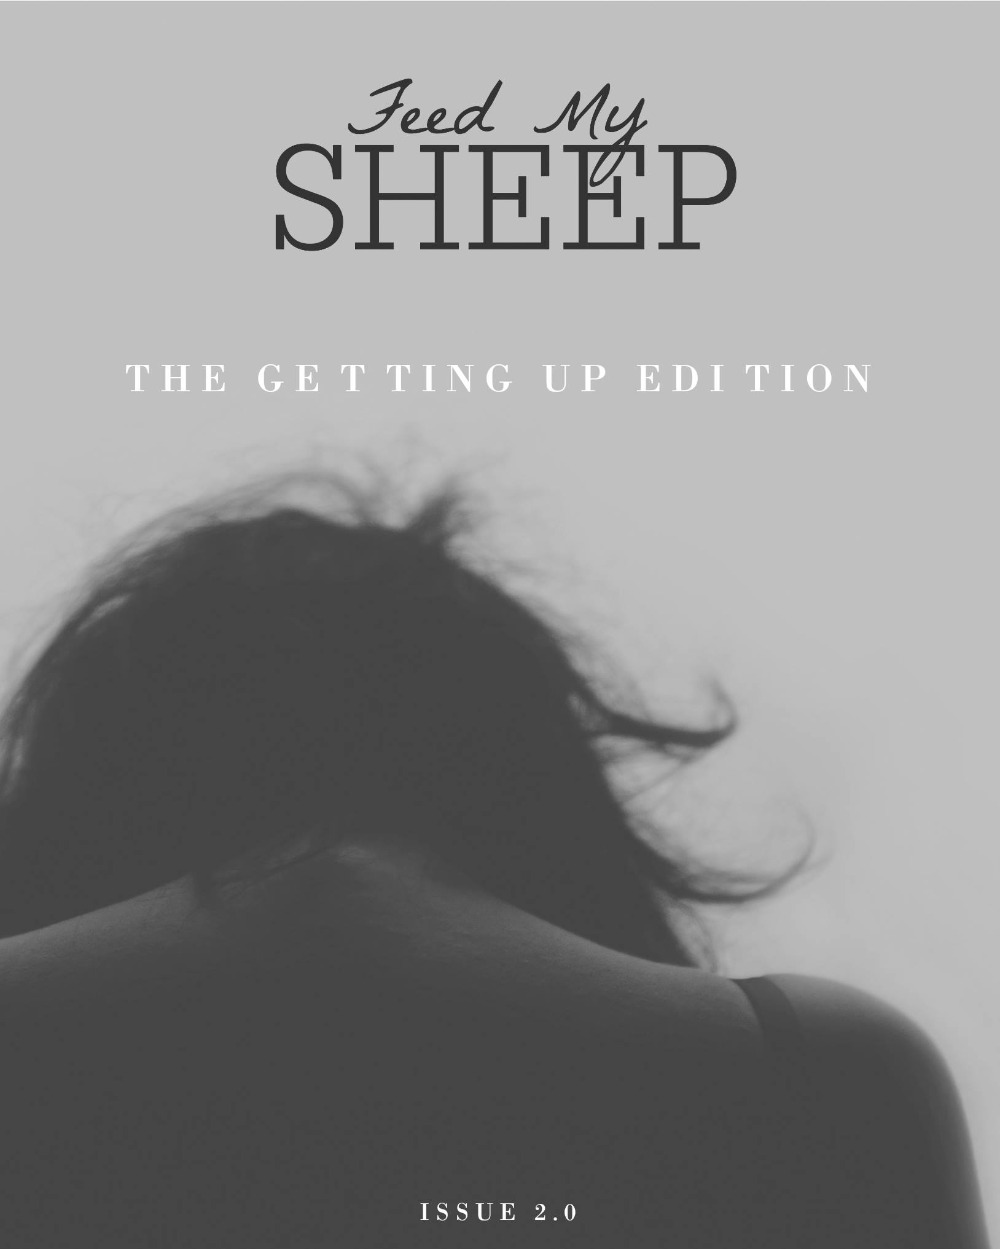 Feed My SHEEP // The Getting Up Edition